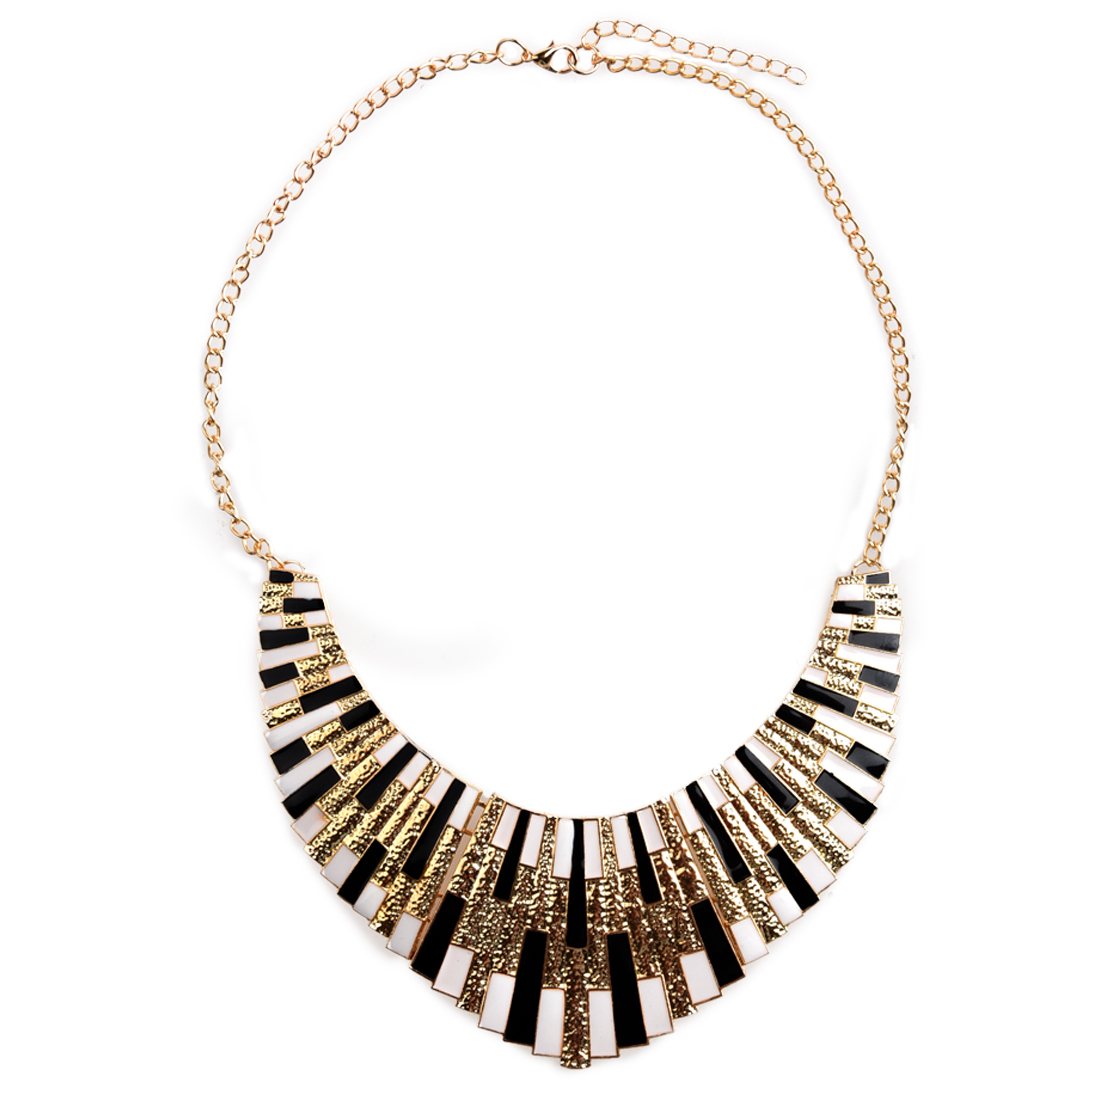 Chain Necklace fancy Jewelry Vintage Gold Bohemian Style Woman Gift black and white